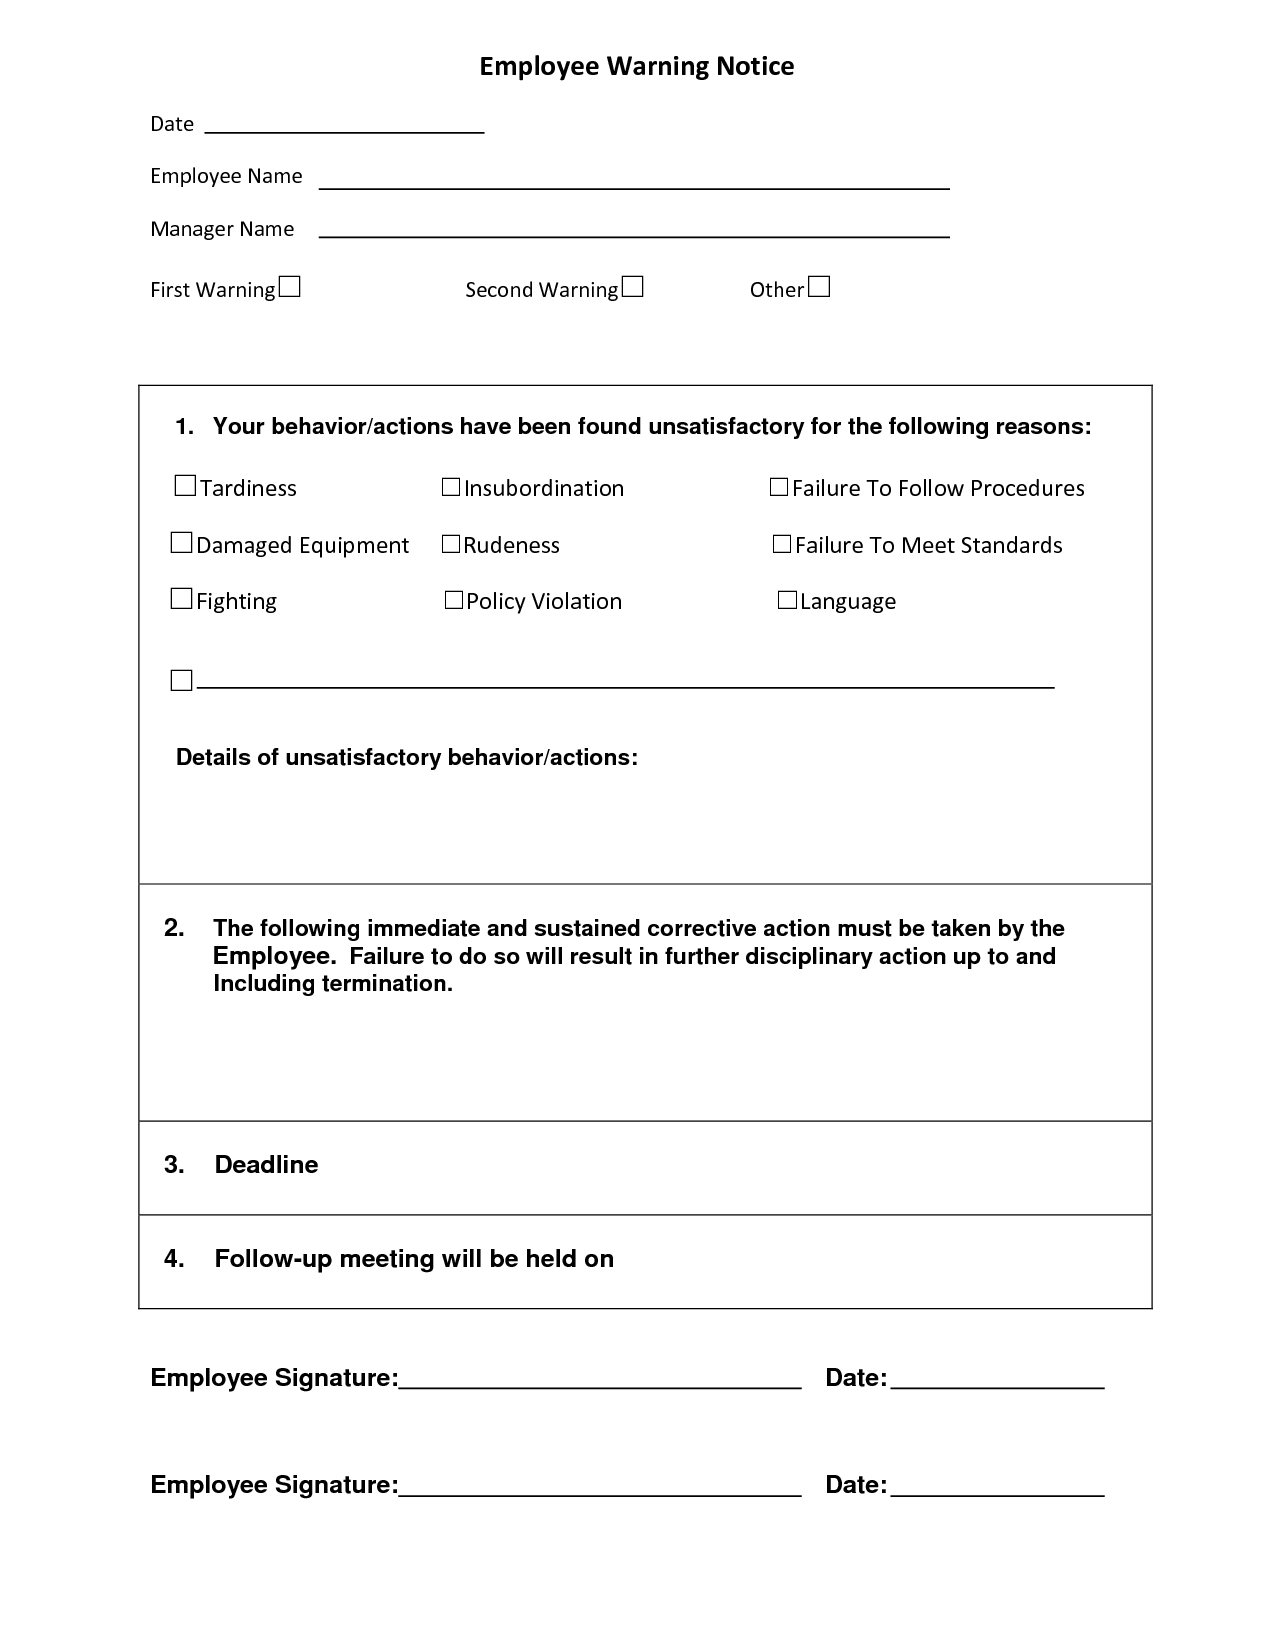 Employee Warning Notice | Employee Forms | Pinterest | Business ...